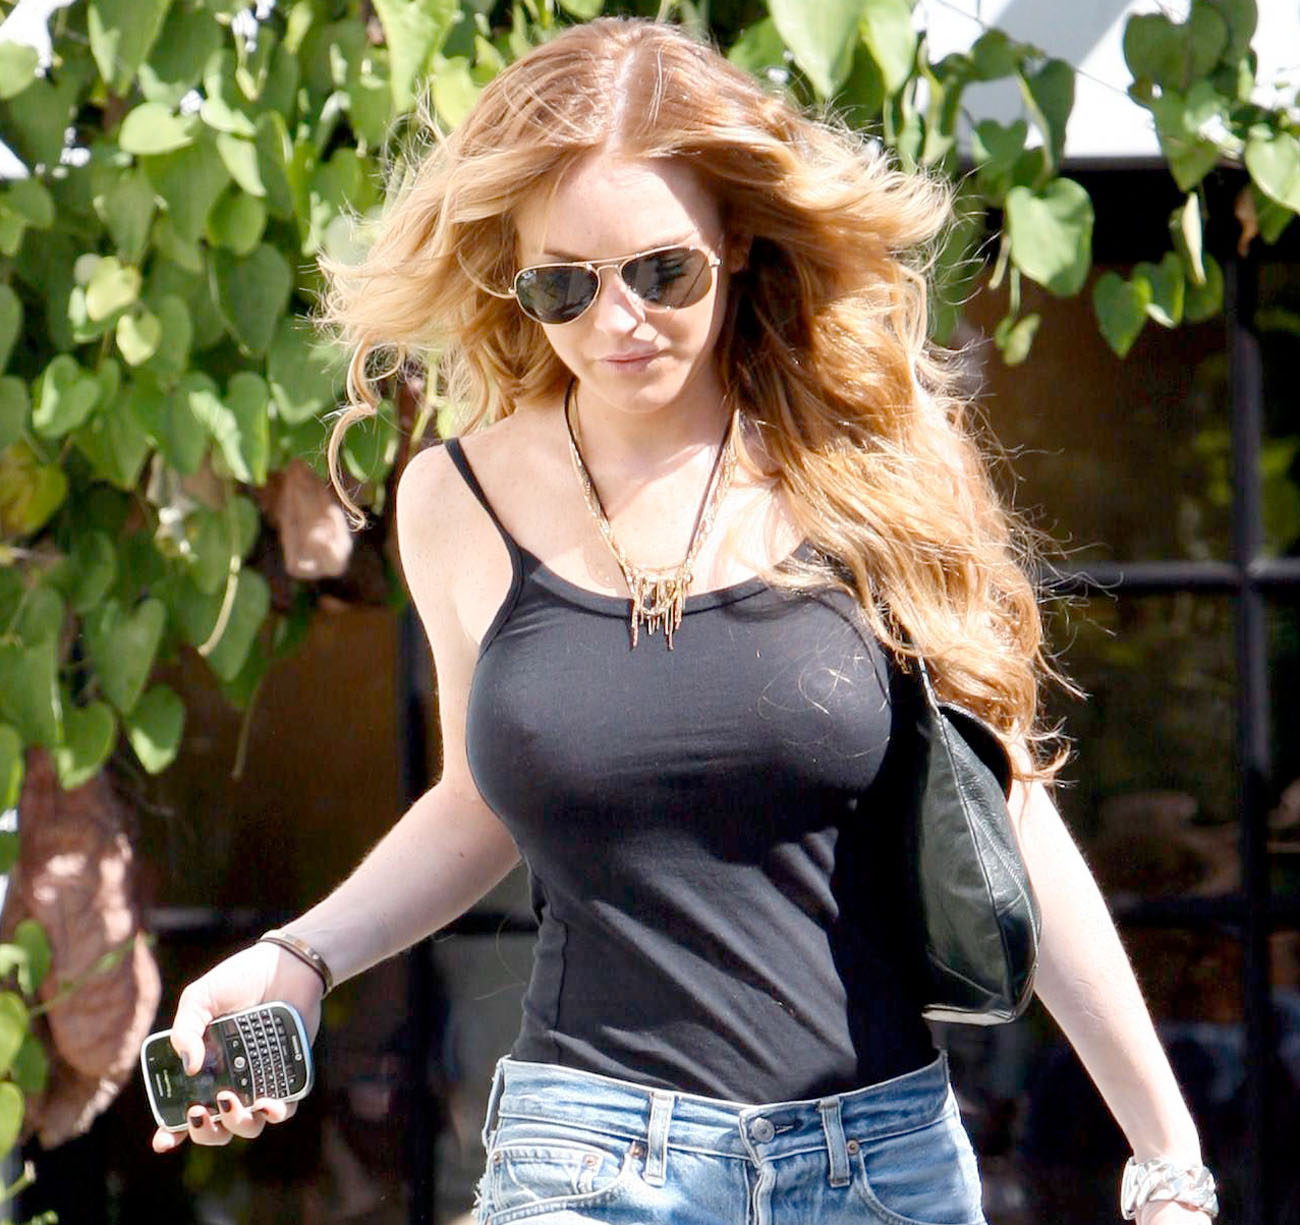 http://1.bp.blogspot.com/-S2KDOBQQ59Y/TmyuCVqVZLI/AAAAAAAAD_c/OIXgQwaXalA/s1600/lindsay_lohan_Seethrough_transparent_shirt_boobs+%252819%2529.jpg